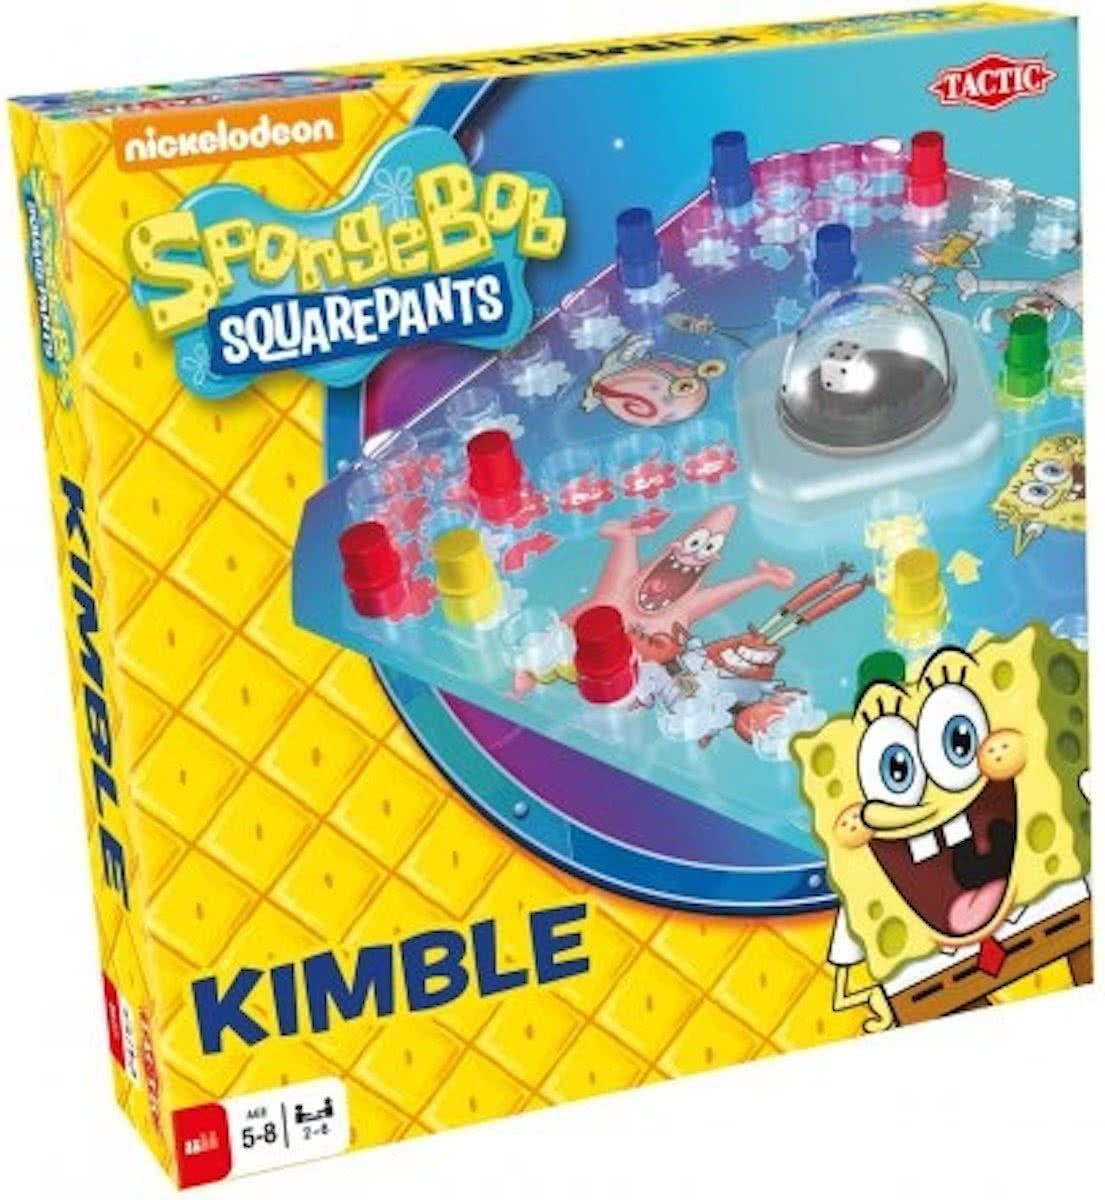 Spongebob Kimble